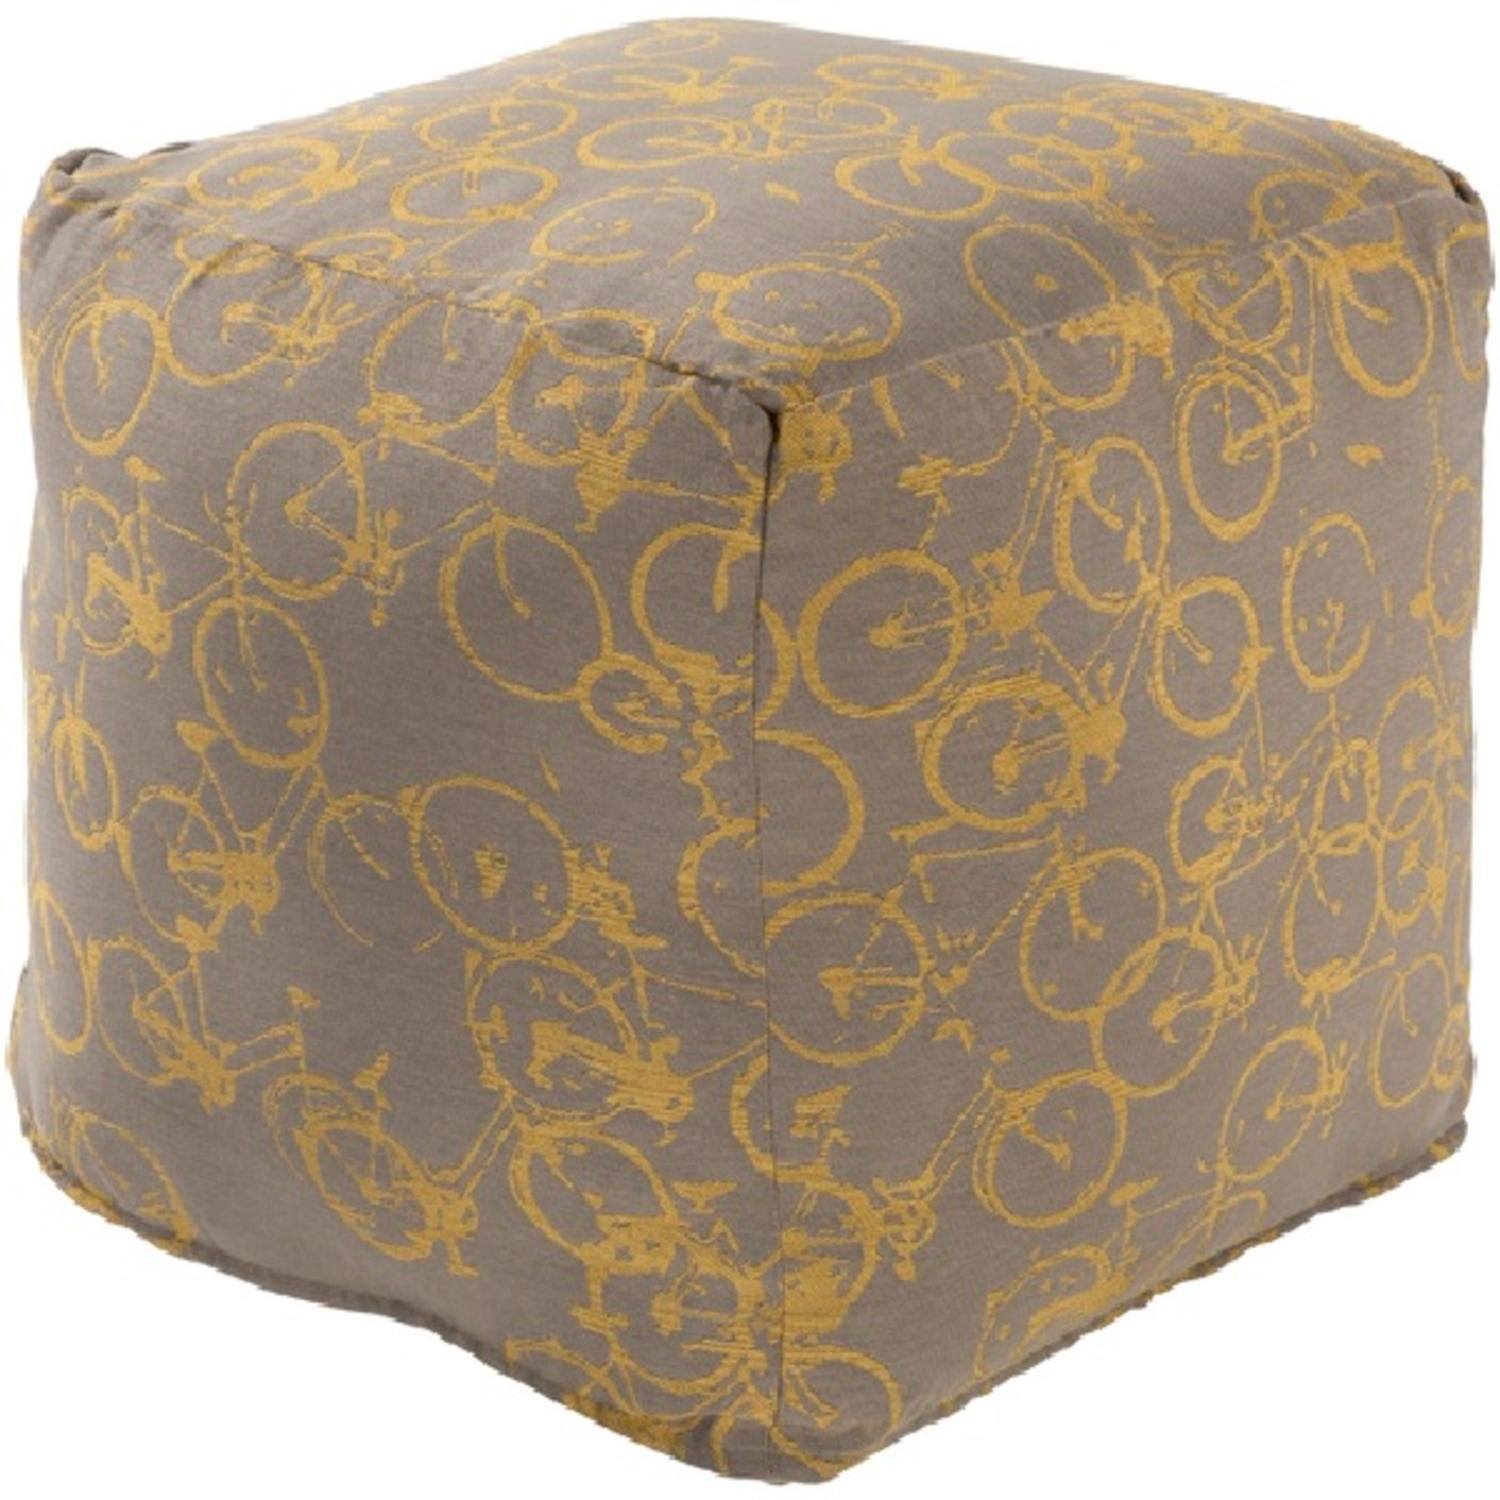 18'' Peddle Power Gray and Golden Yellow Whimsical Square Pouf Ottoman